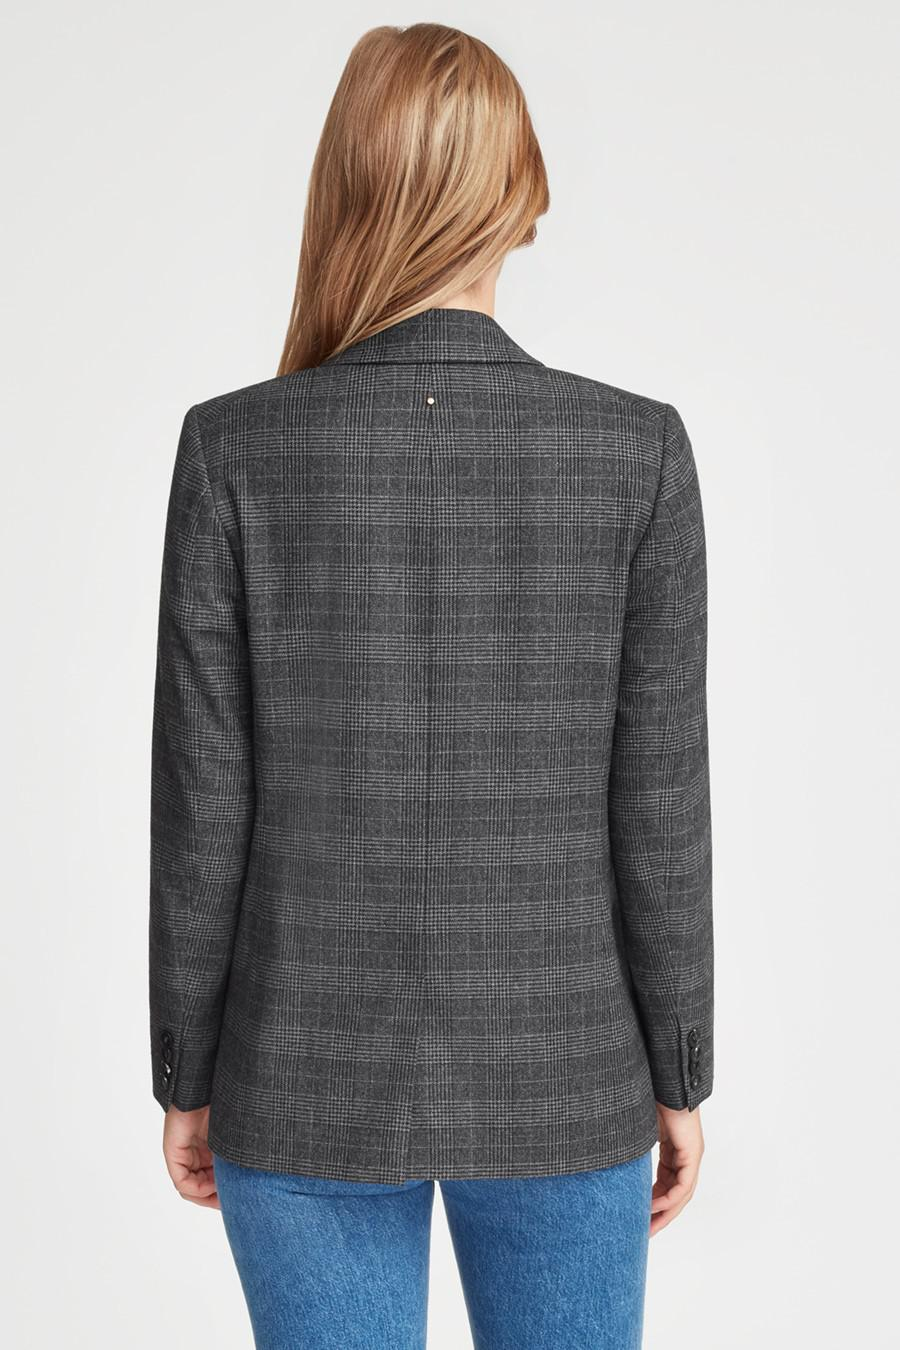 Women's Wool Double-Breasted Blazer in Grey Plaid   Size: 2